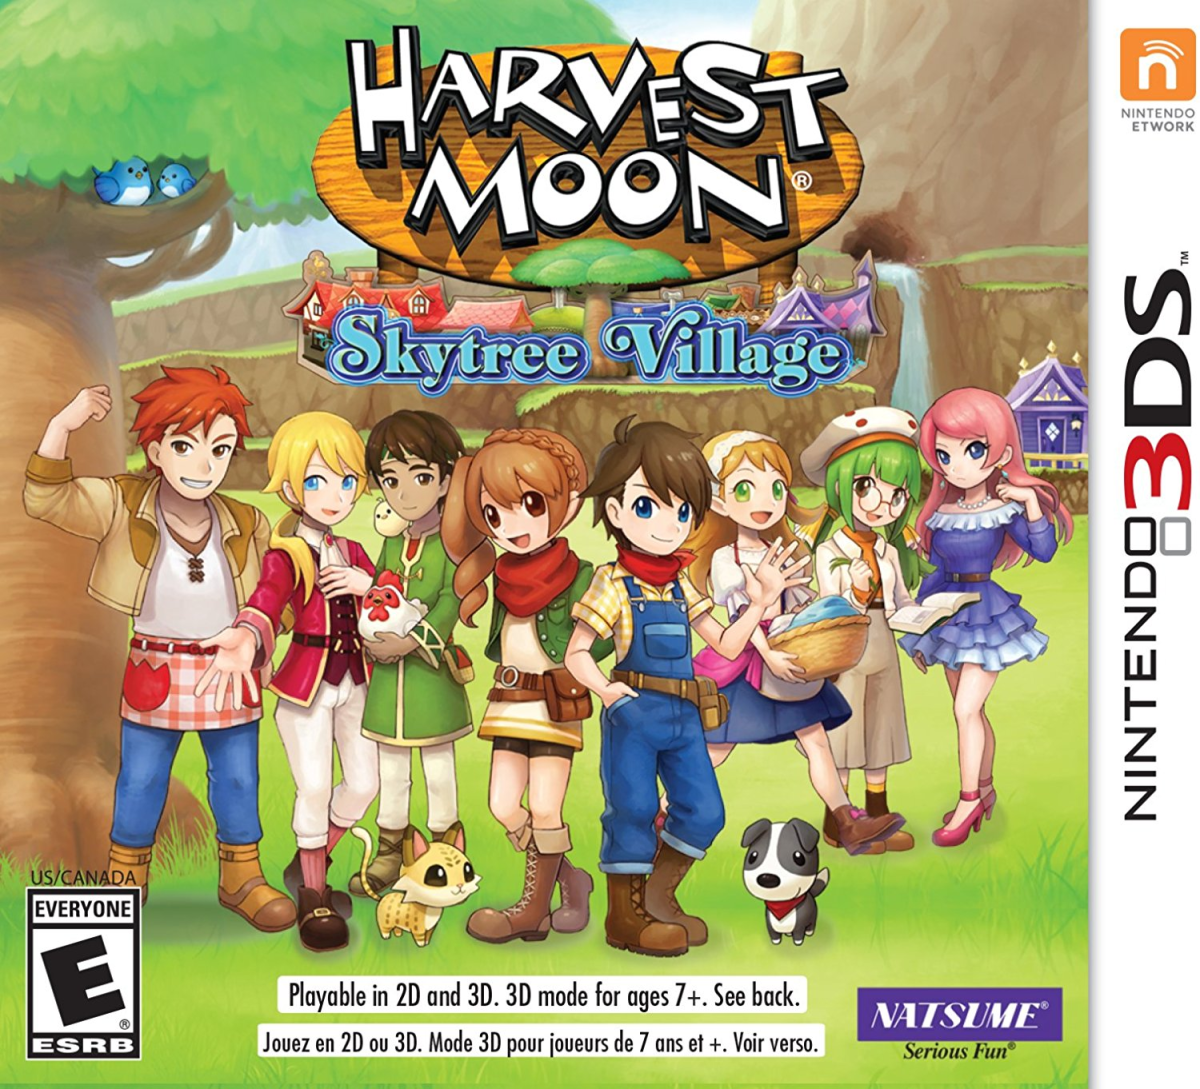 'Harvest Moon' is the antidote to your 2017 hangover (A New Year's Suggestion)